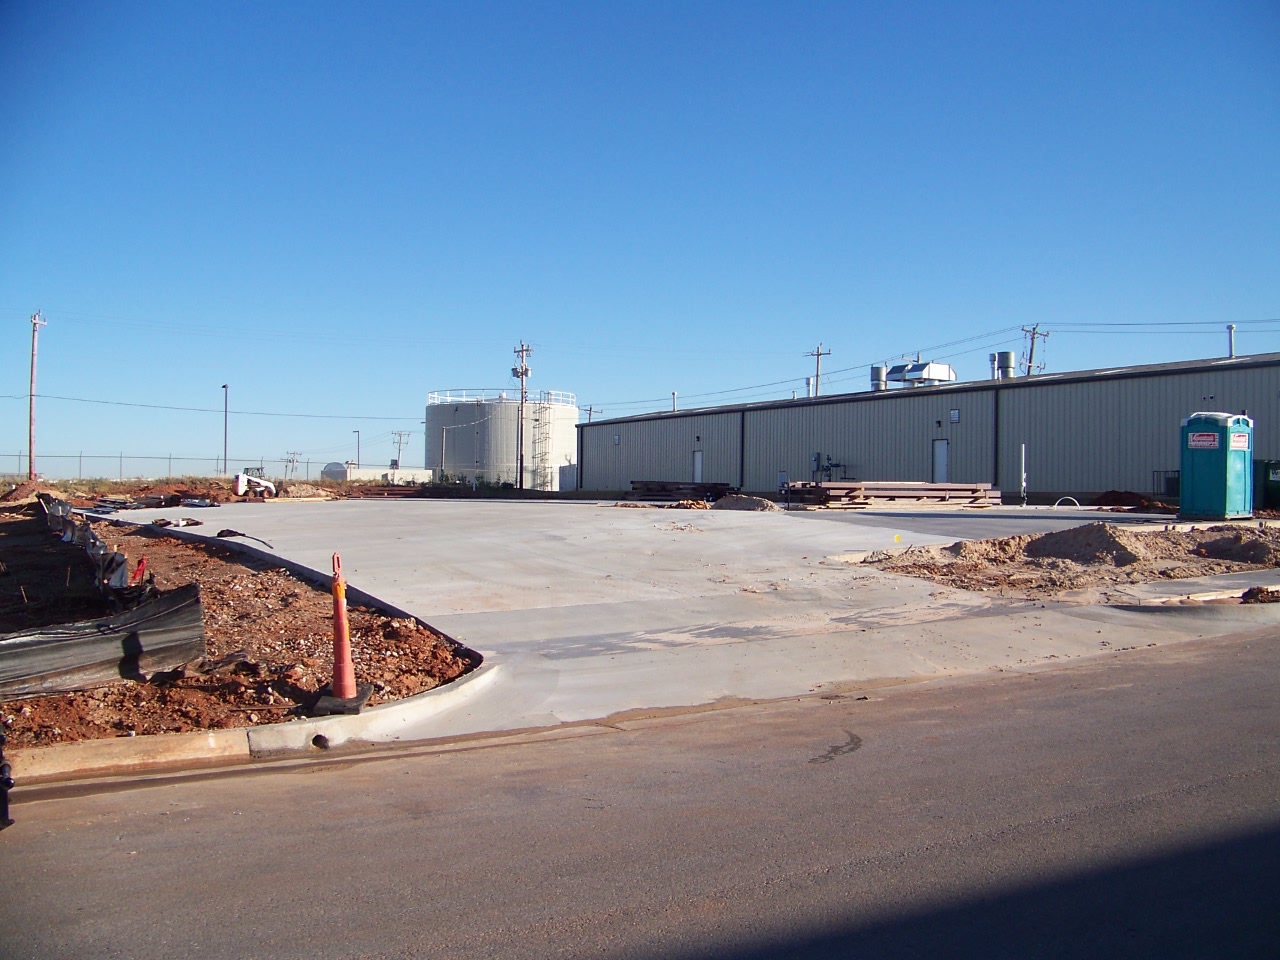 Industrial Warehouse Construction Concrete Oklahoma City OKC